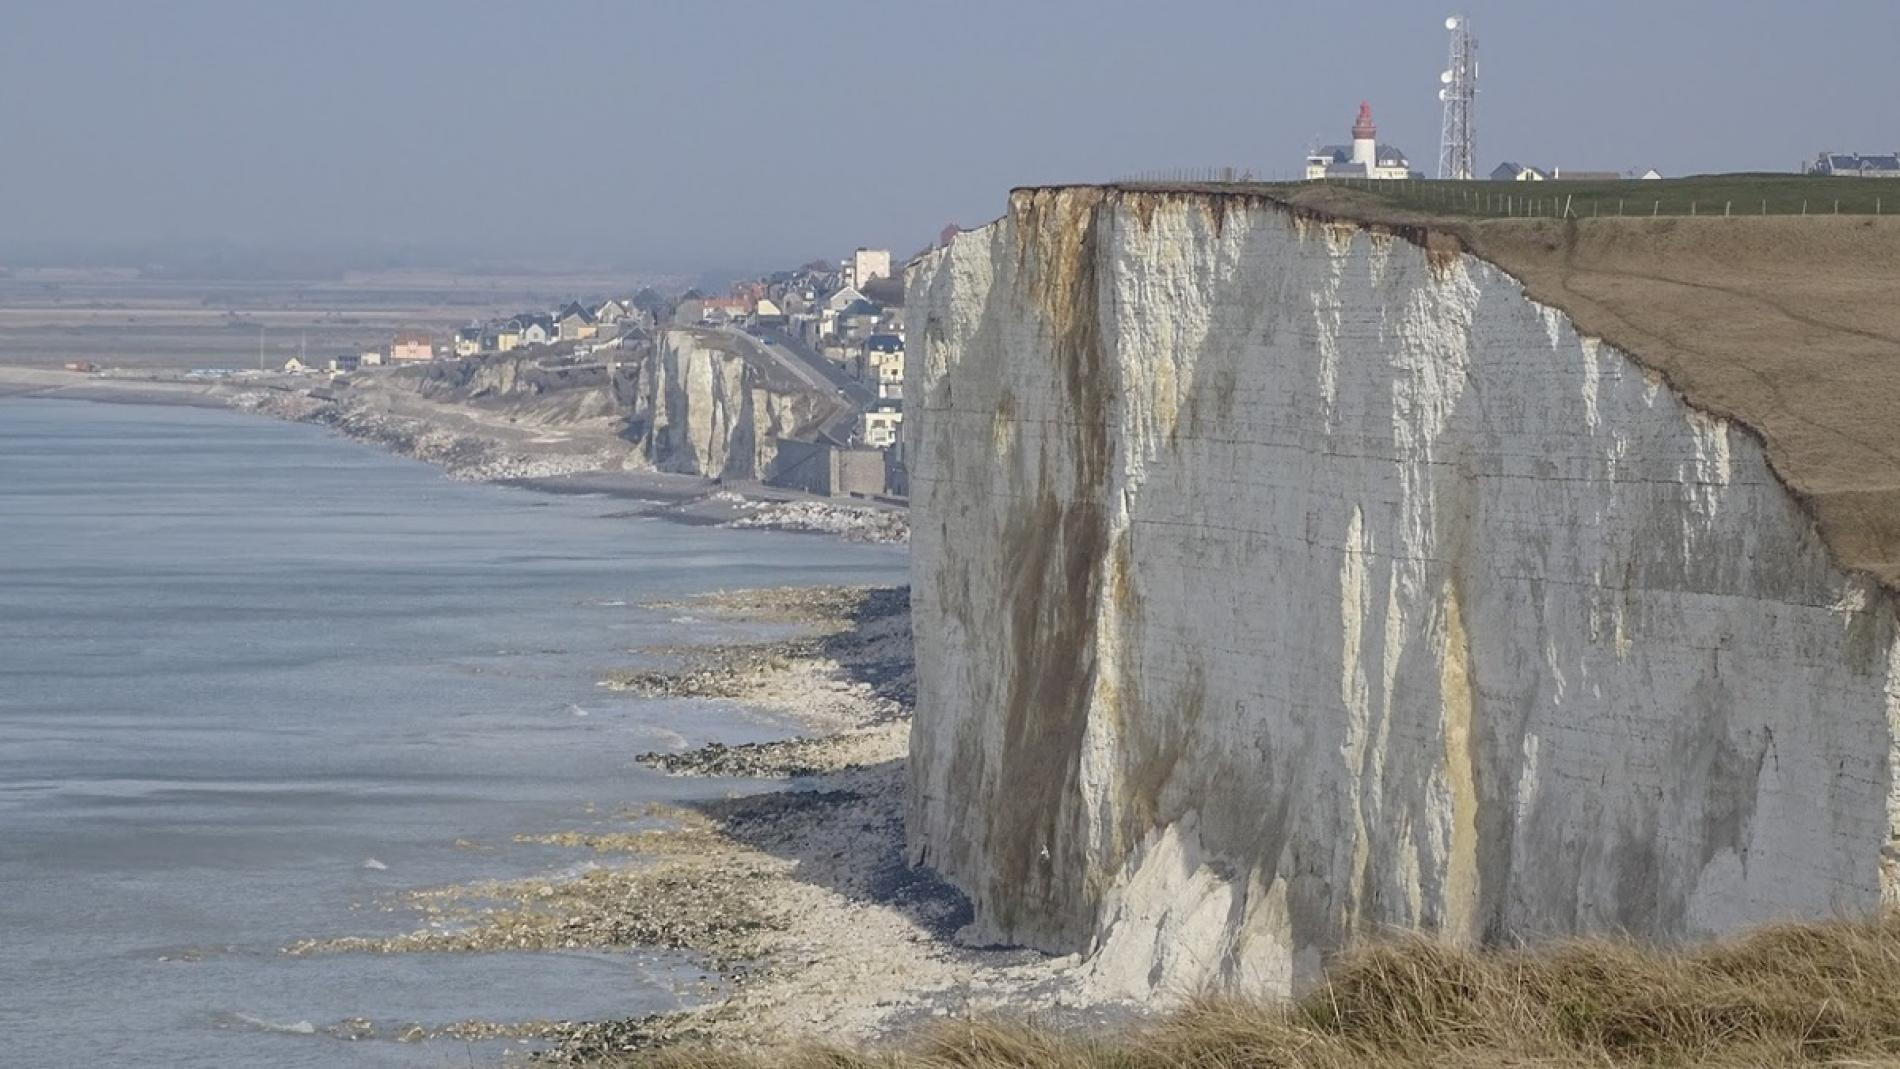 Ault and its cliffs